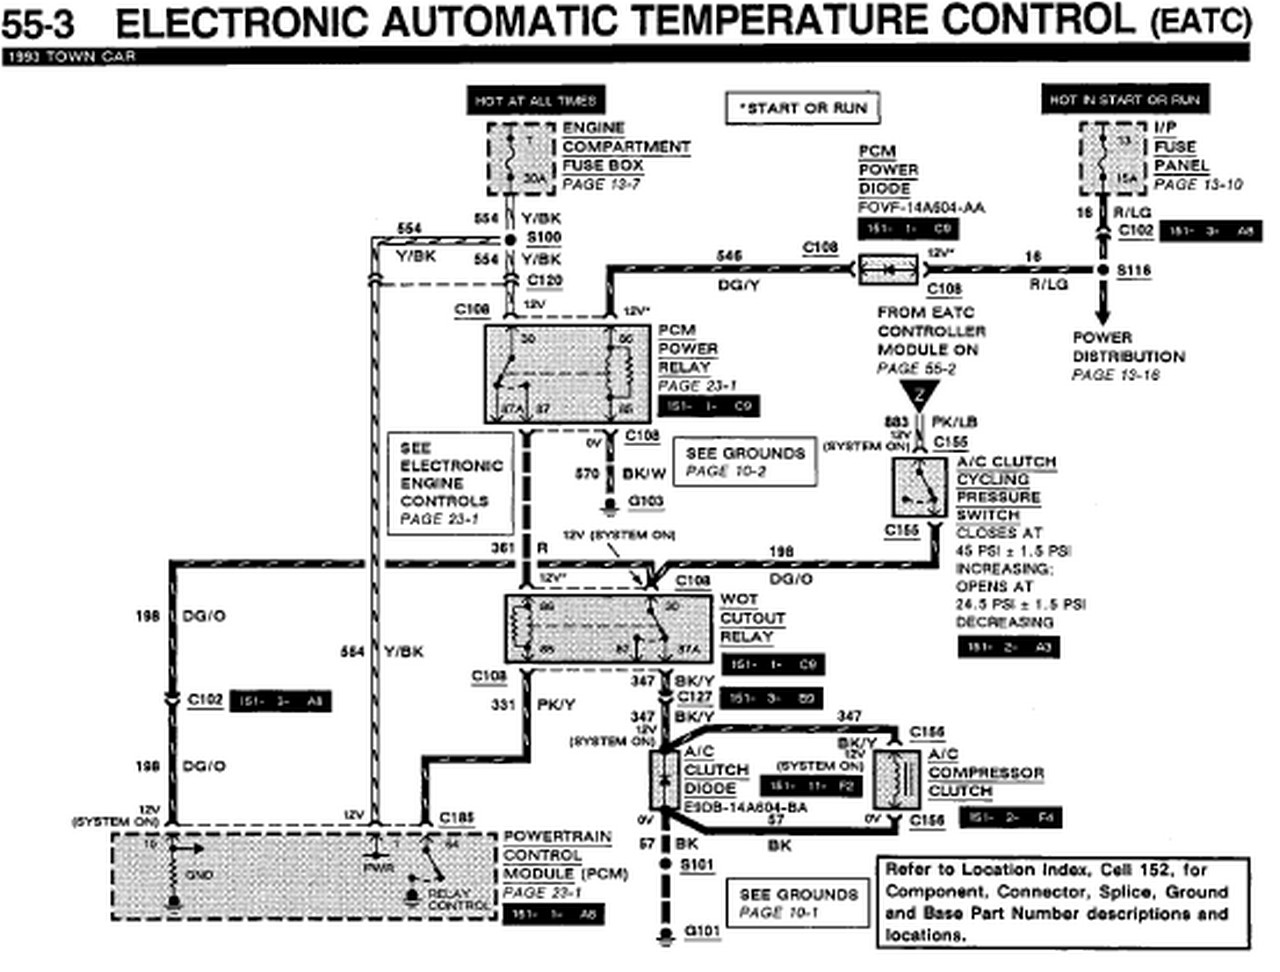 wiring diagram for lincoln town car wiring diagram 2002 lincoln town car 1993 lincoln town car eatc wiring diagram | auto wiring ... #6